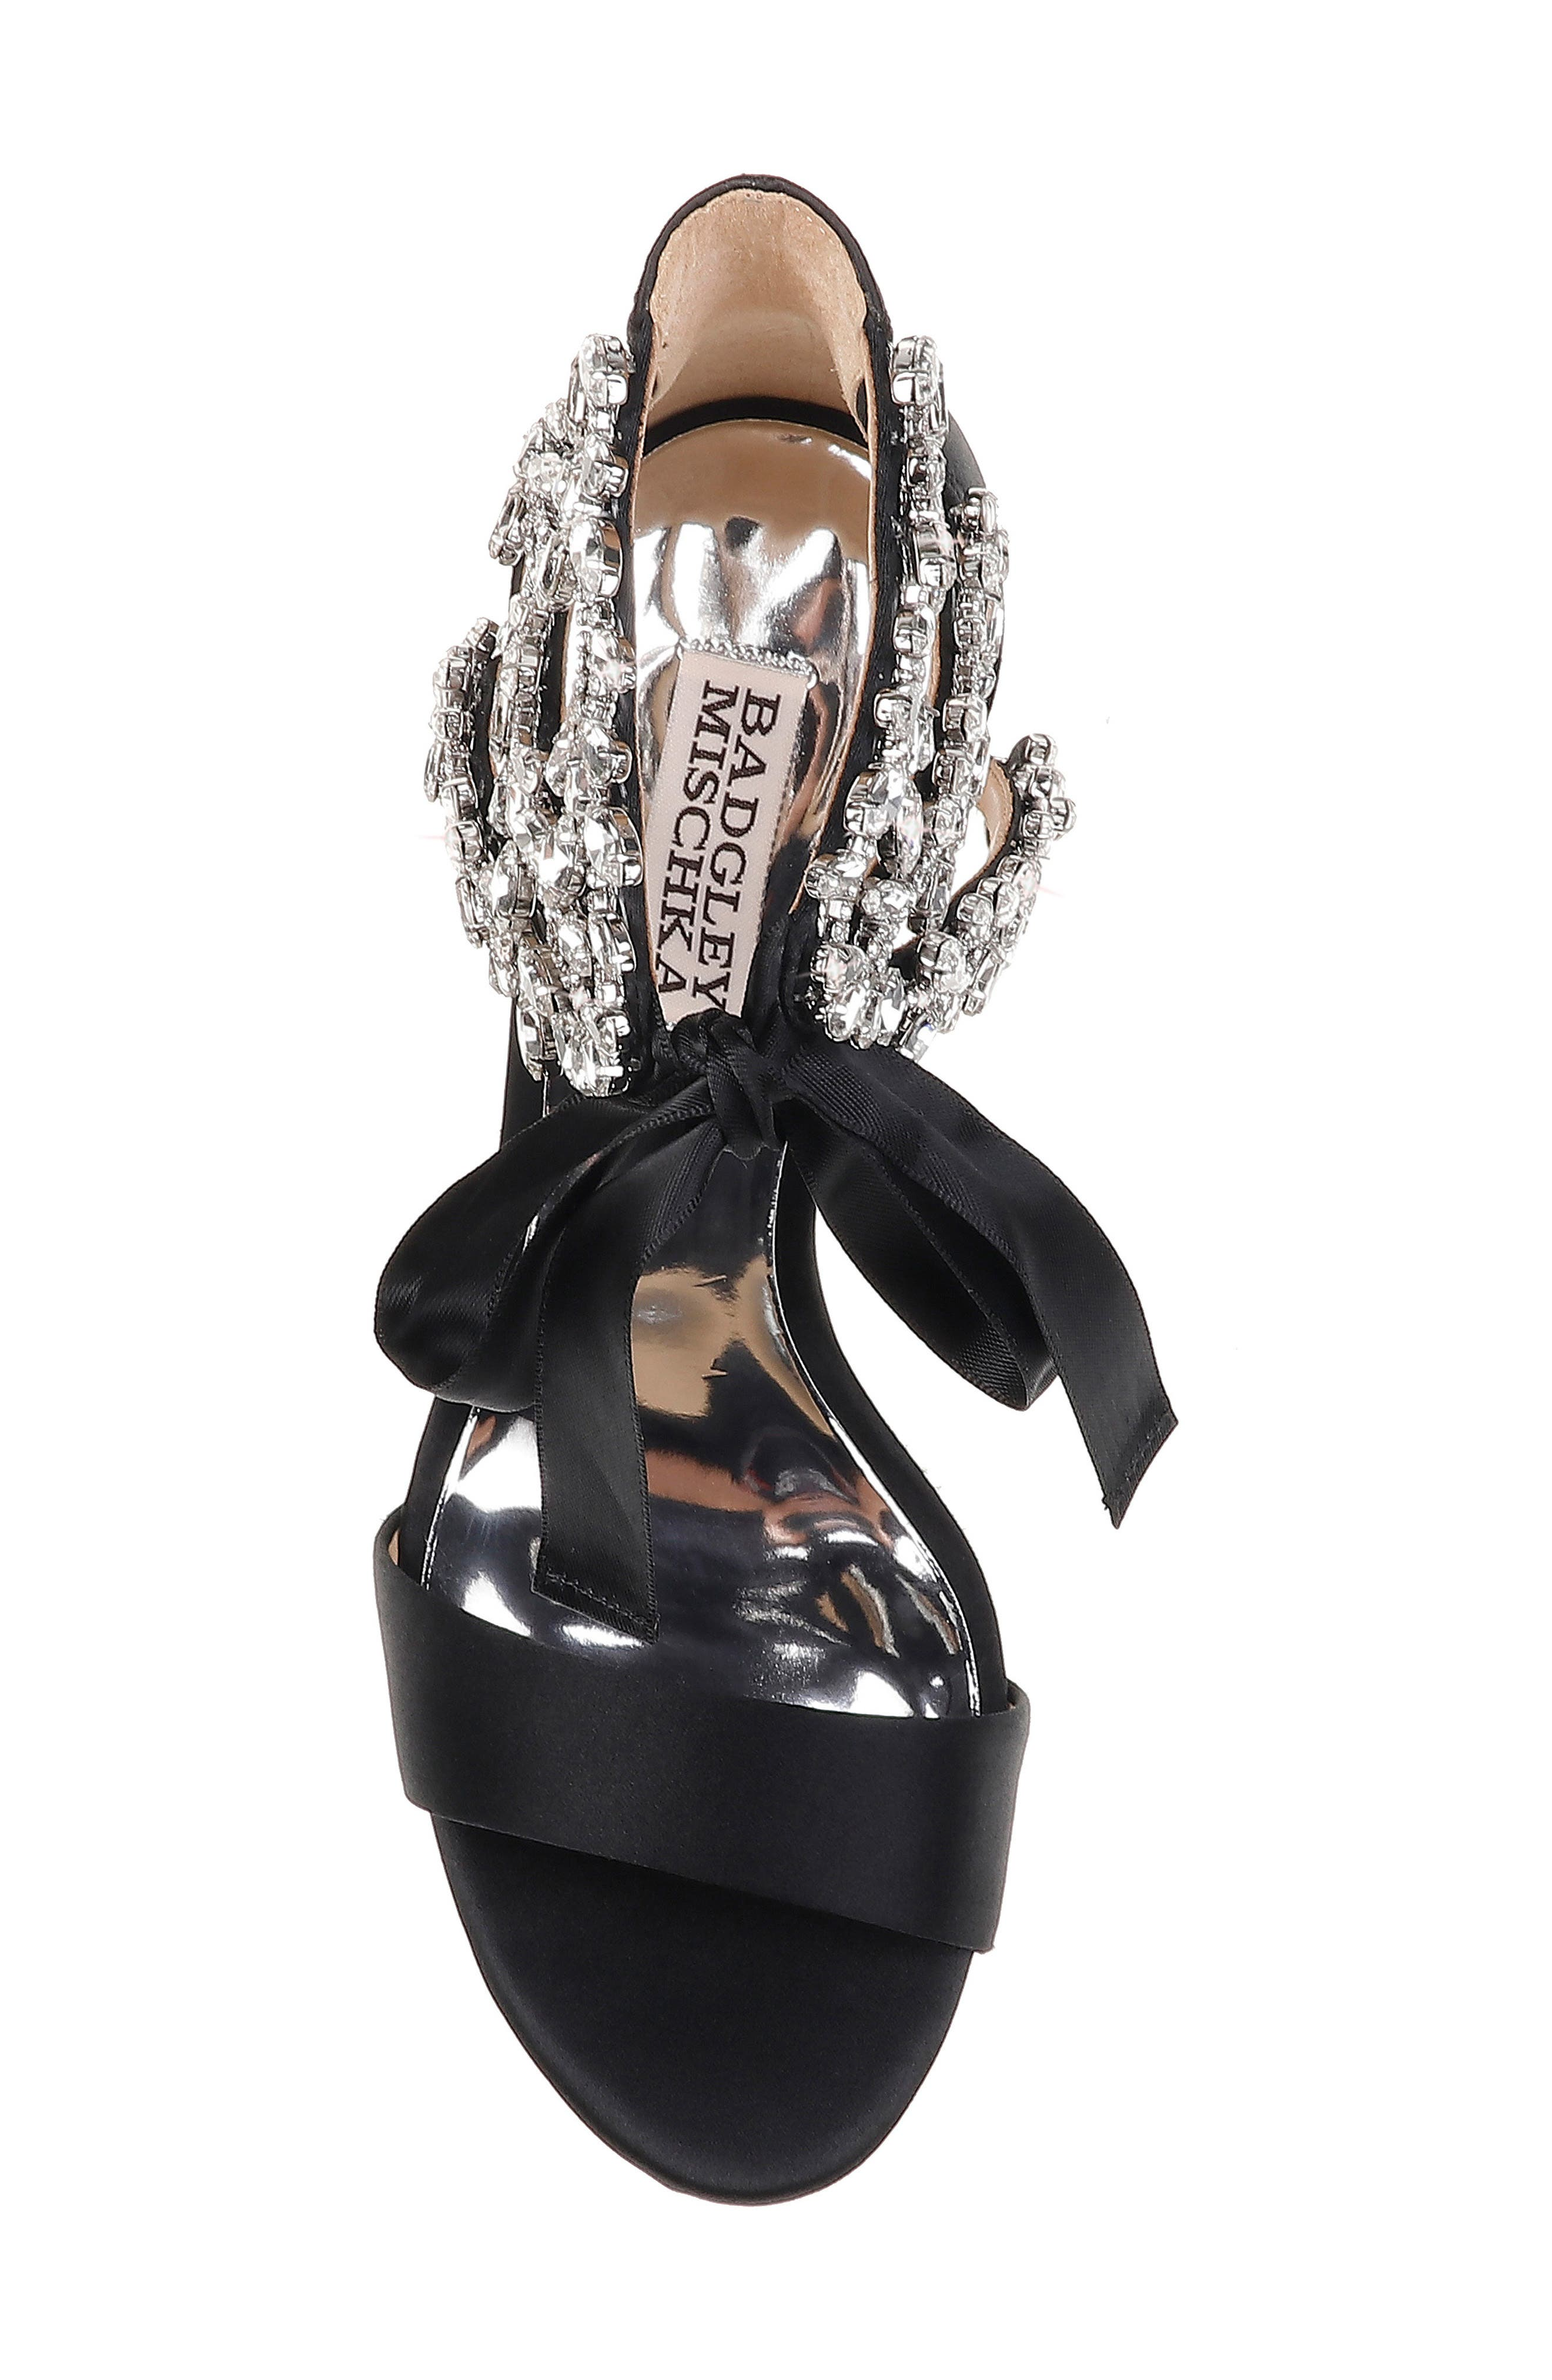 BADGLEY MISCHKA COLLECTION, Badgley Mischka Felicia Embellished Sandal, Alternate thumbnail 5, color, 015